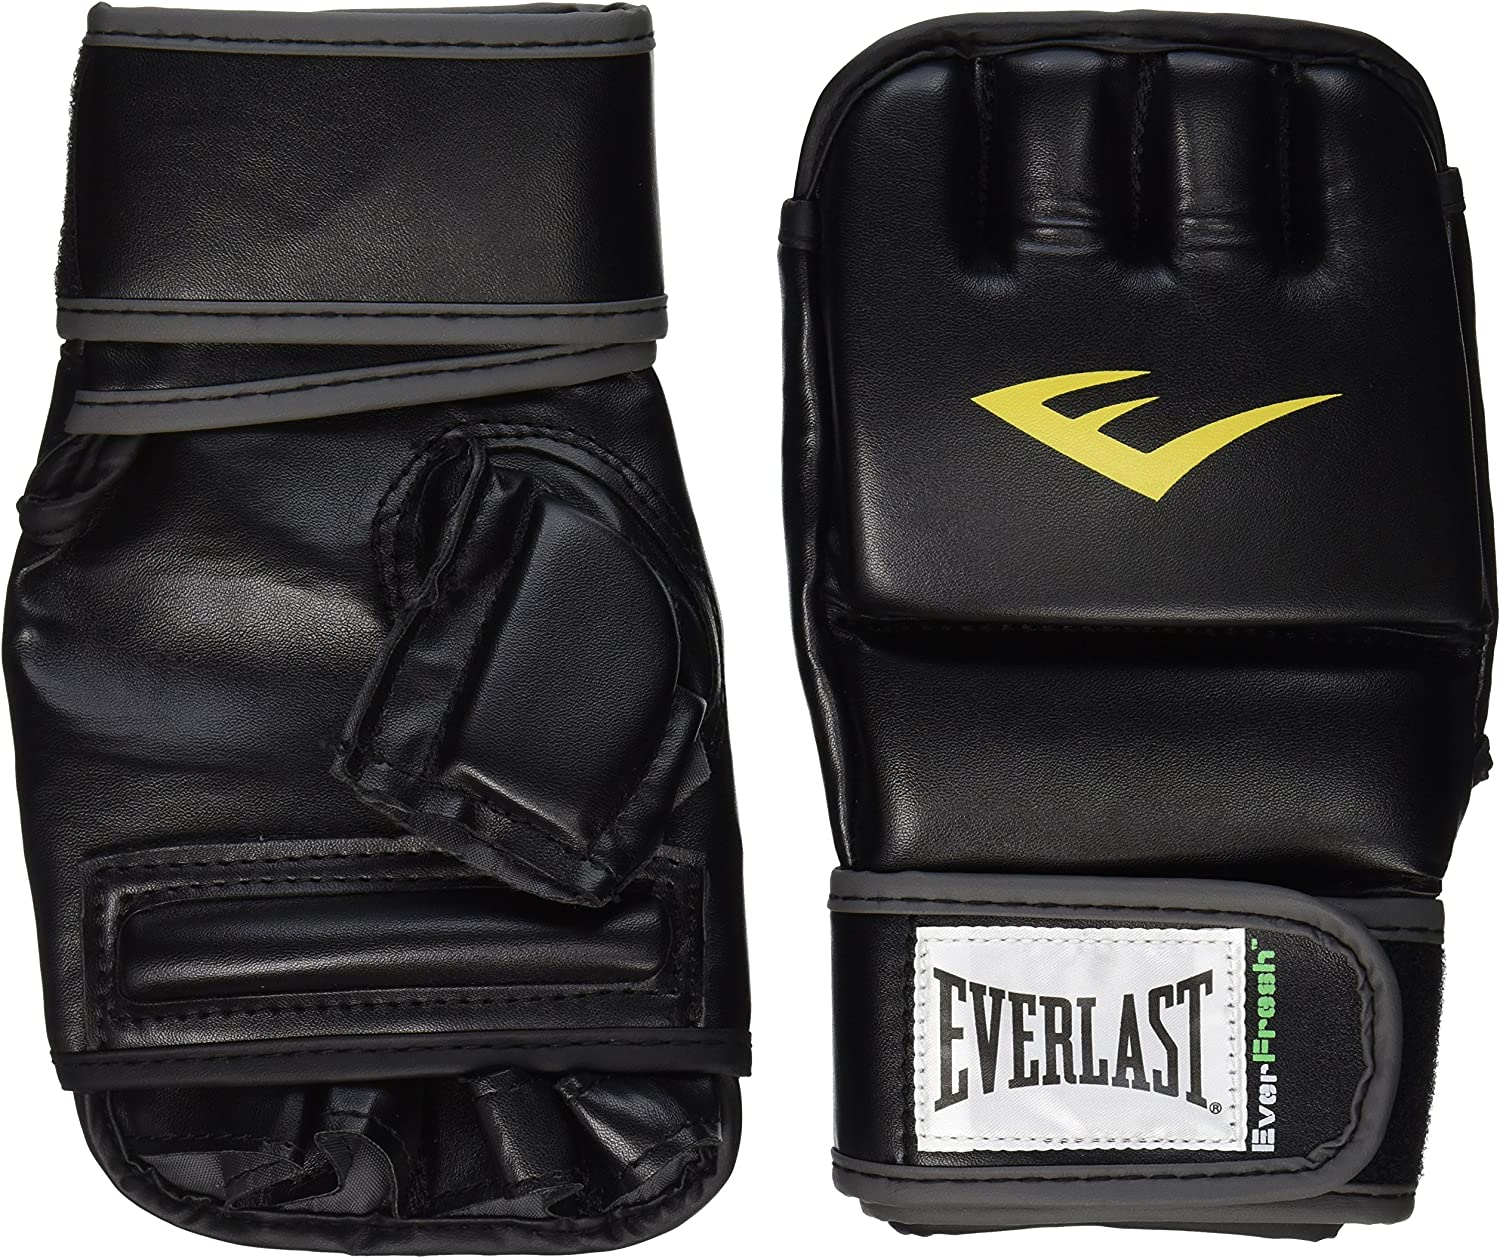 Everlast Zug Advanced Advanced Advanced Wickel-Heavy Bag Handschuhe B001FX5L4G  Gewinnen Sie hoch geschätzt 852e2e